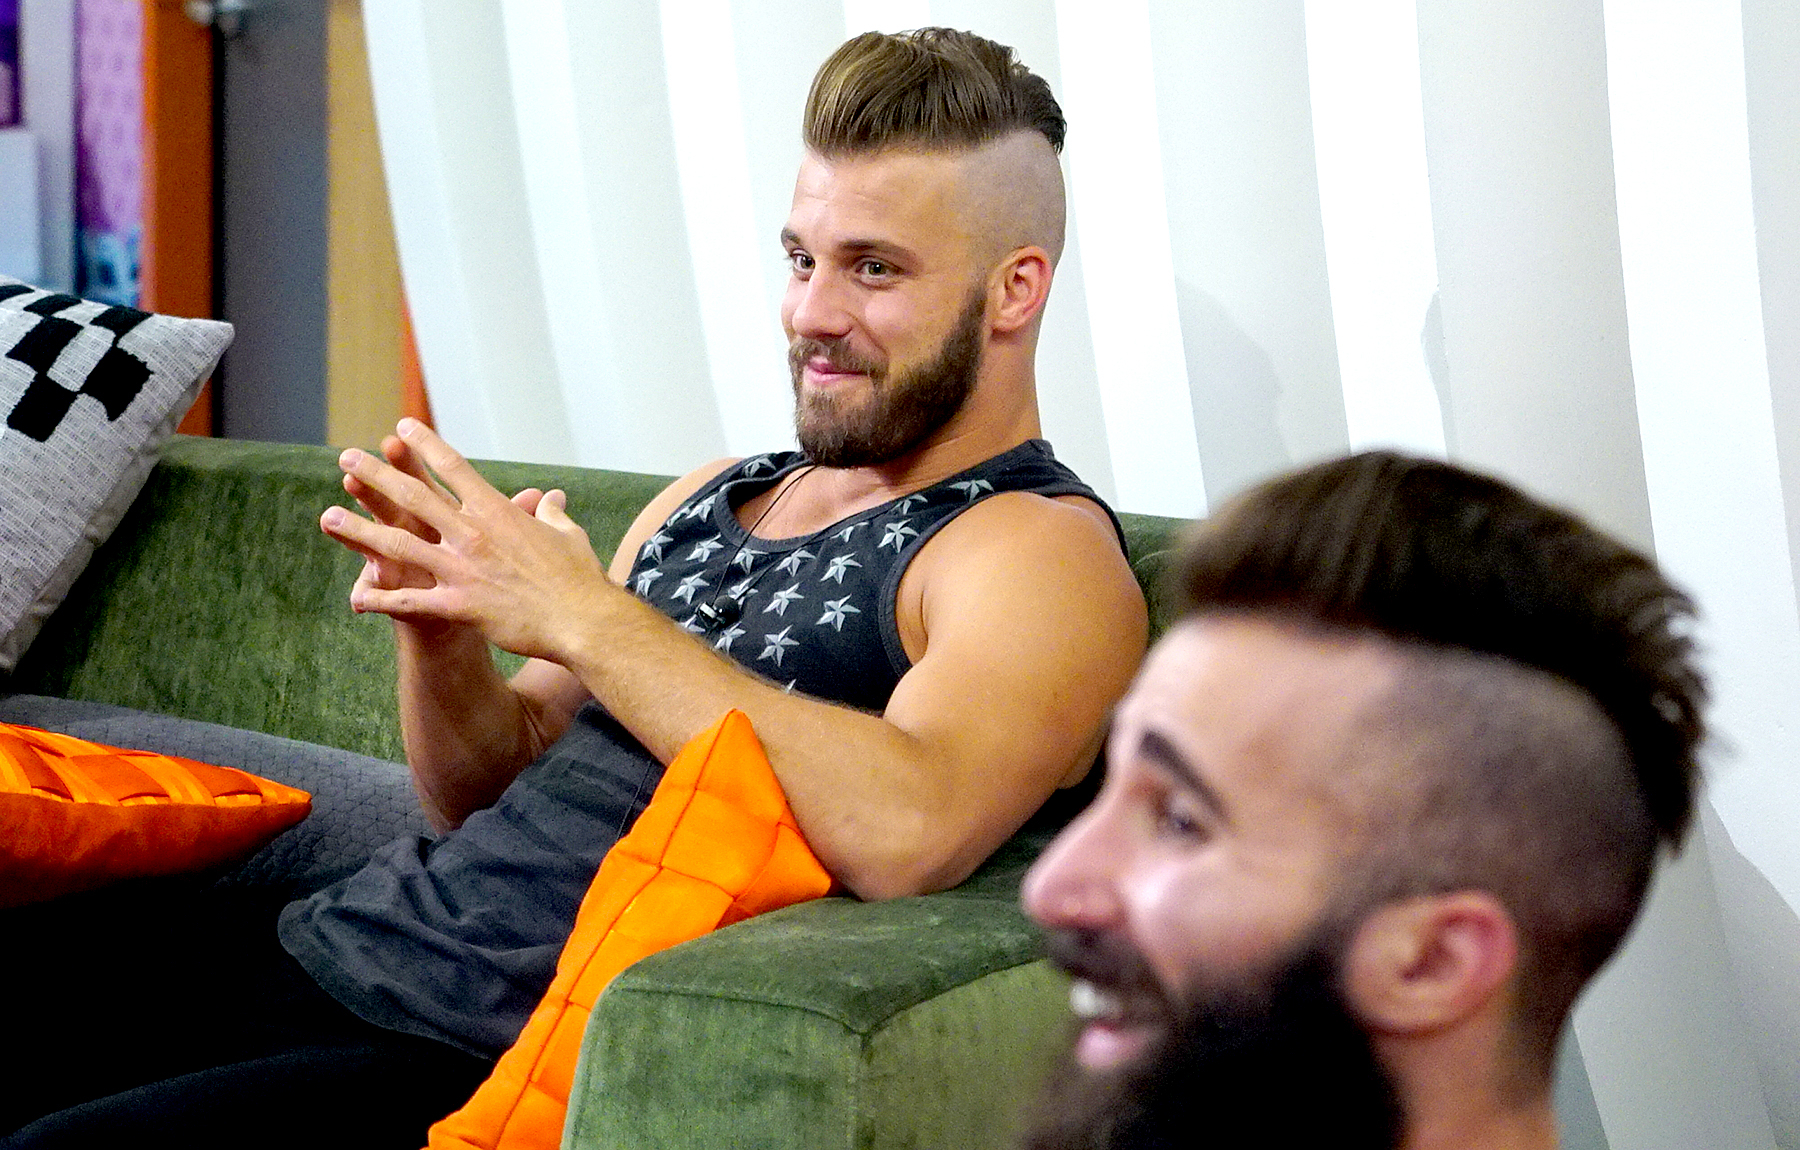 Paulie Calafiore and Paul Abrahamian on Big Brother.